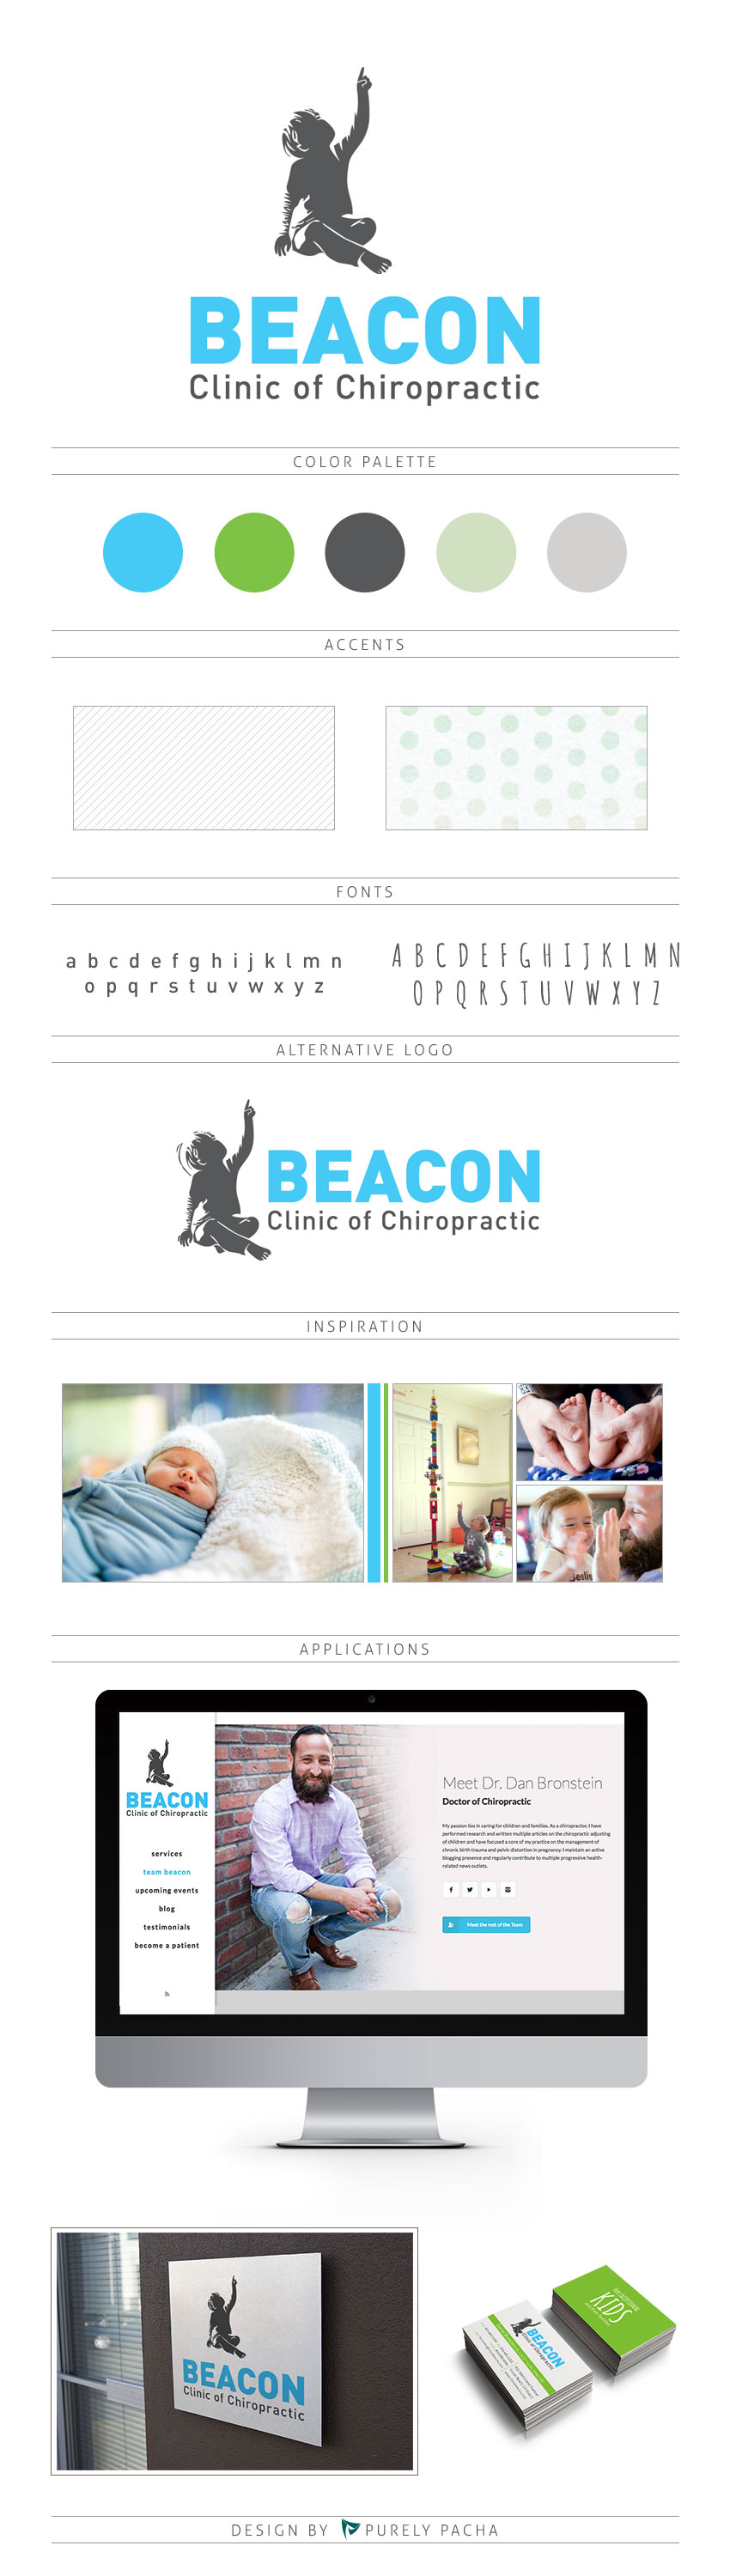 Beacon Chiropractor Logo & Identity by Purely Pacha